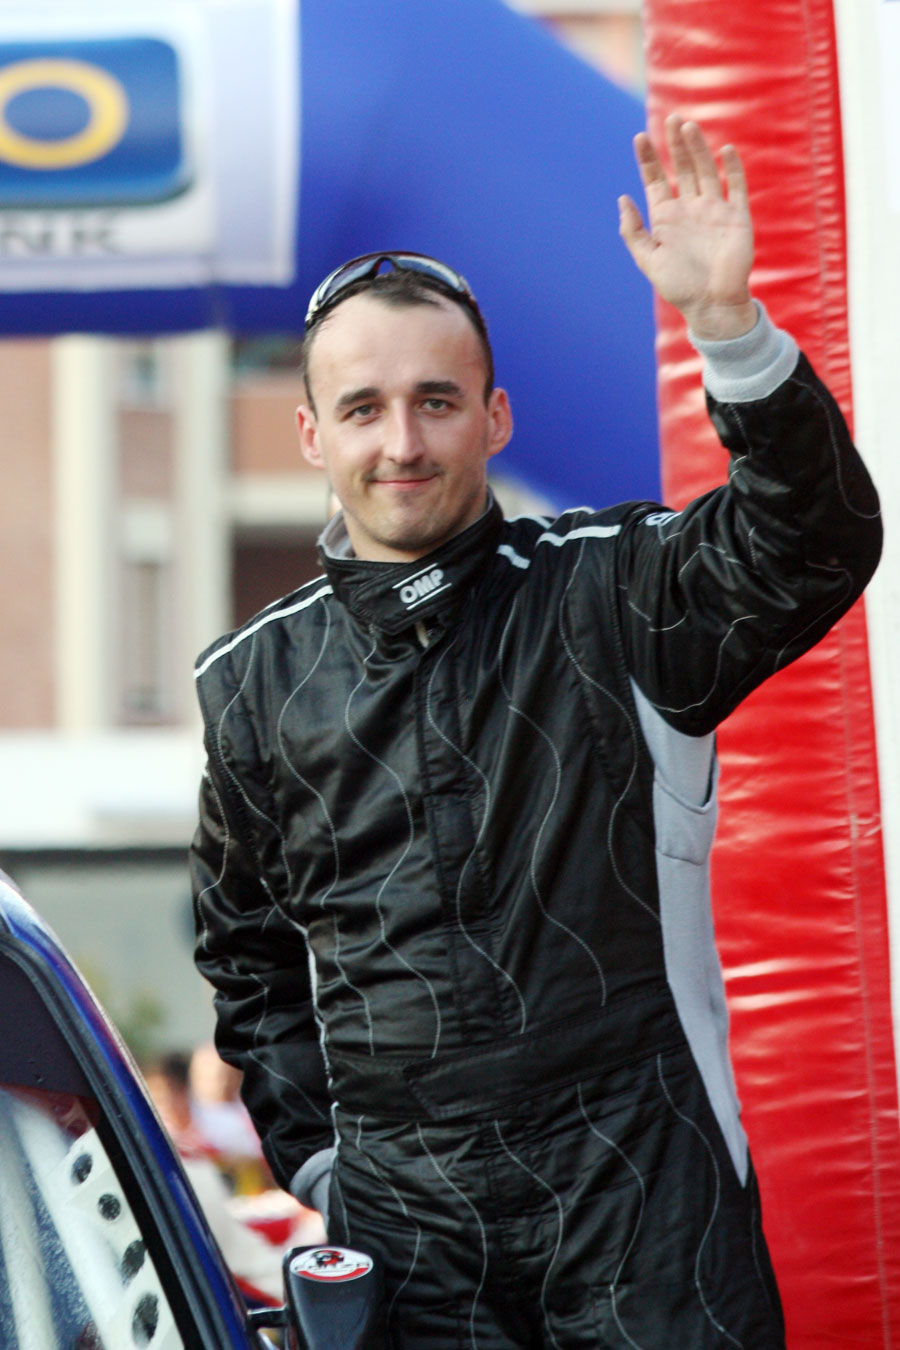 Robert Kubica waves to the crowd on the podium